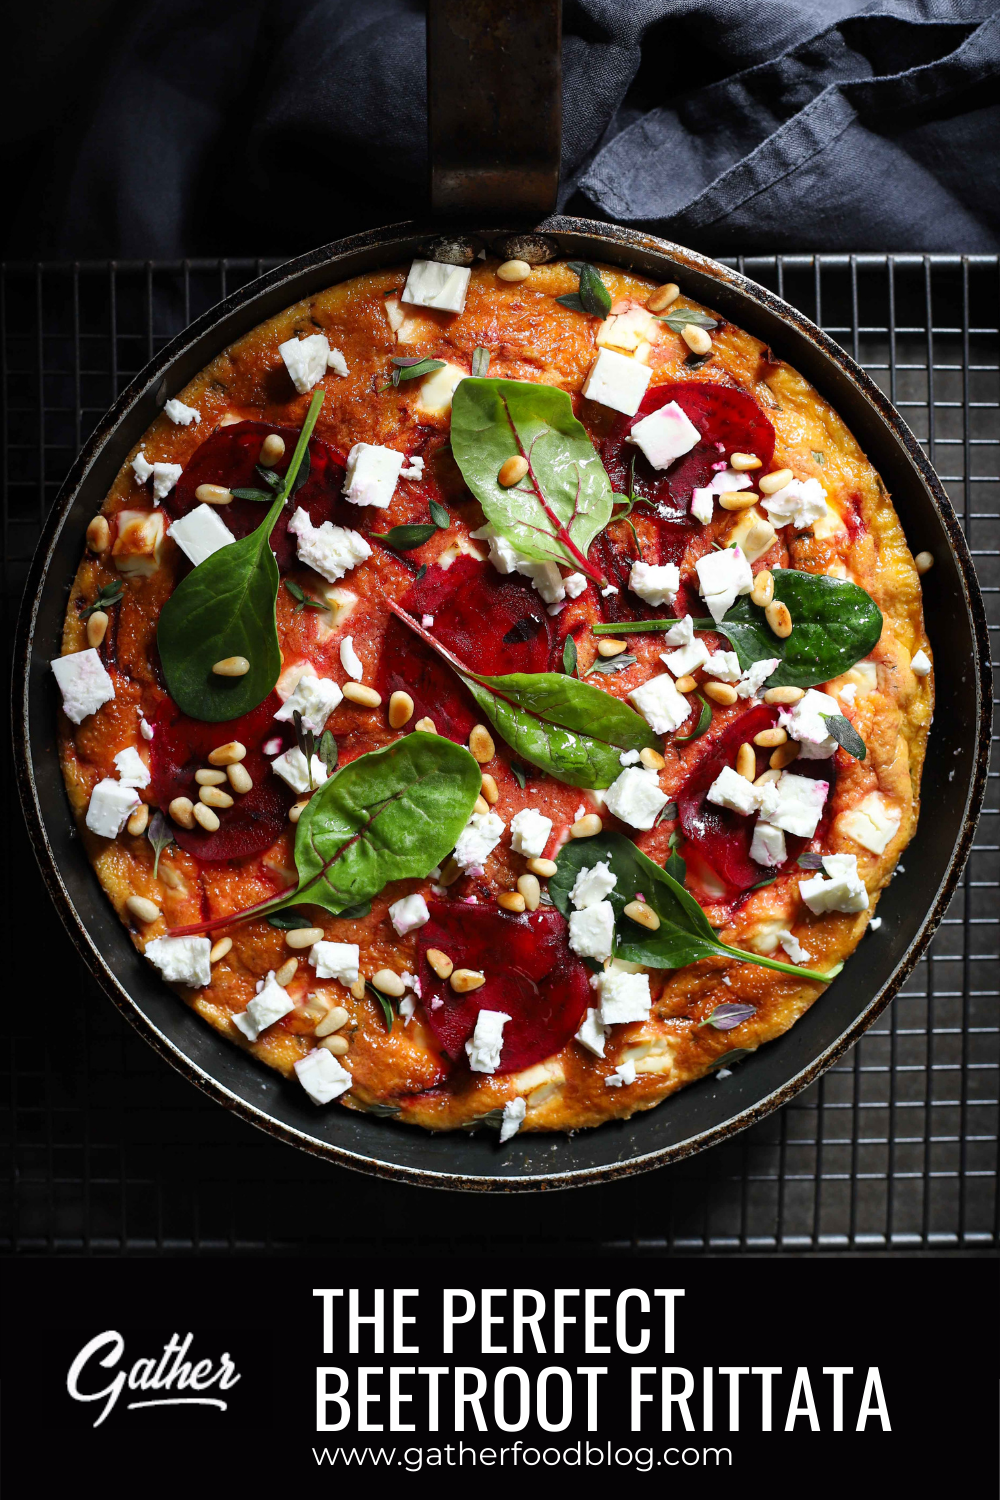 This low carb frittata is a stunner! A delicious beetroot and feta frittata with flavours of balsamic, thyme & red onion. An easy keto recipe